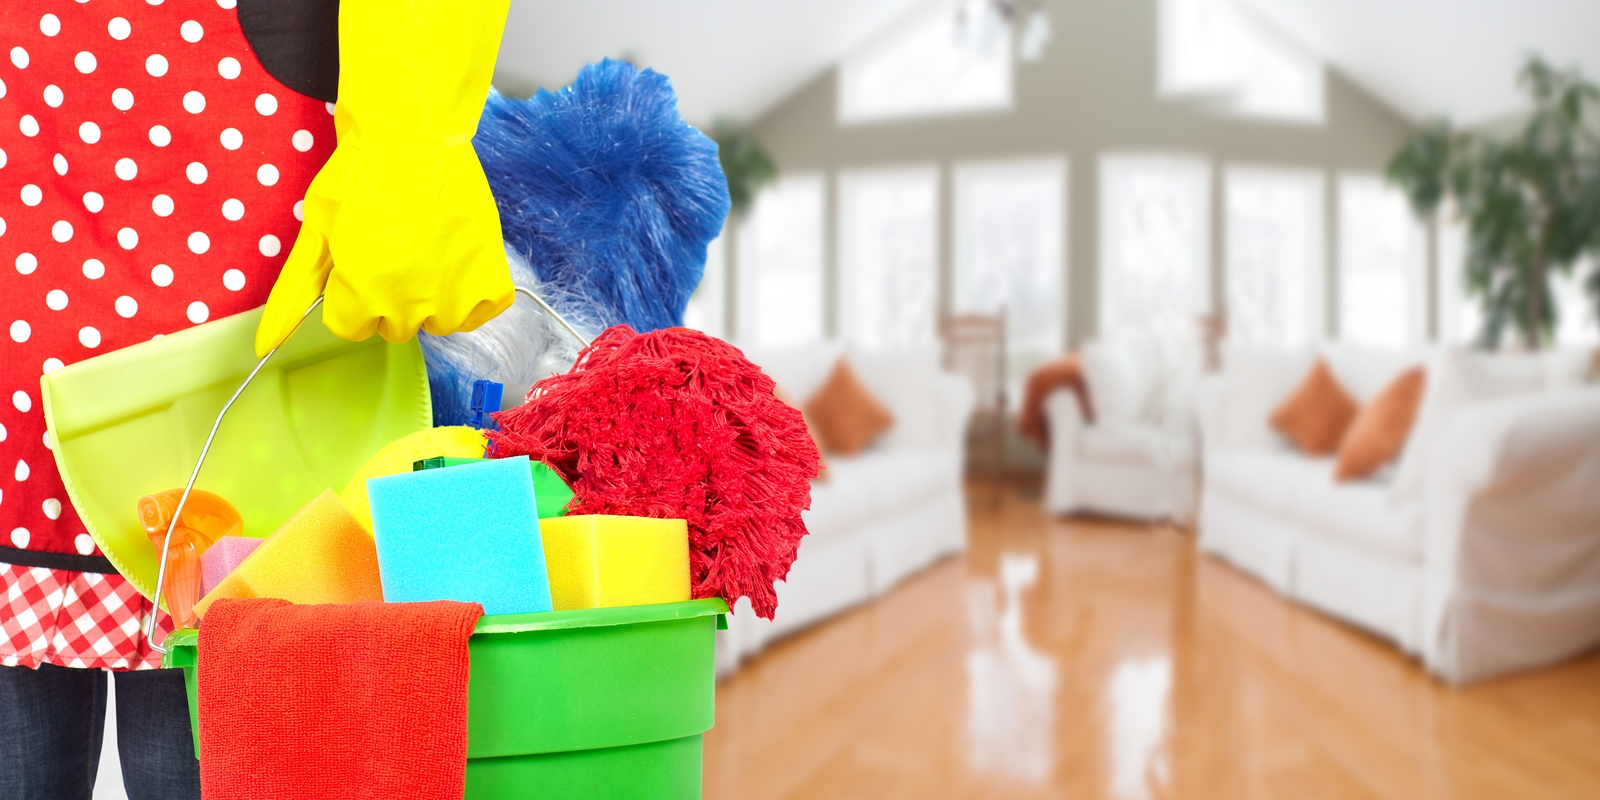 Professional Cleaning Services - End Summer with a Clean Sweep